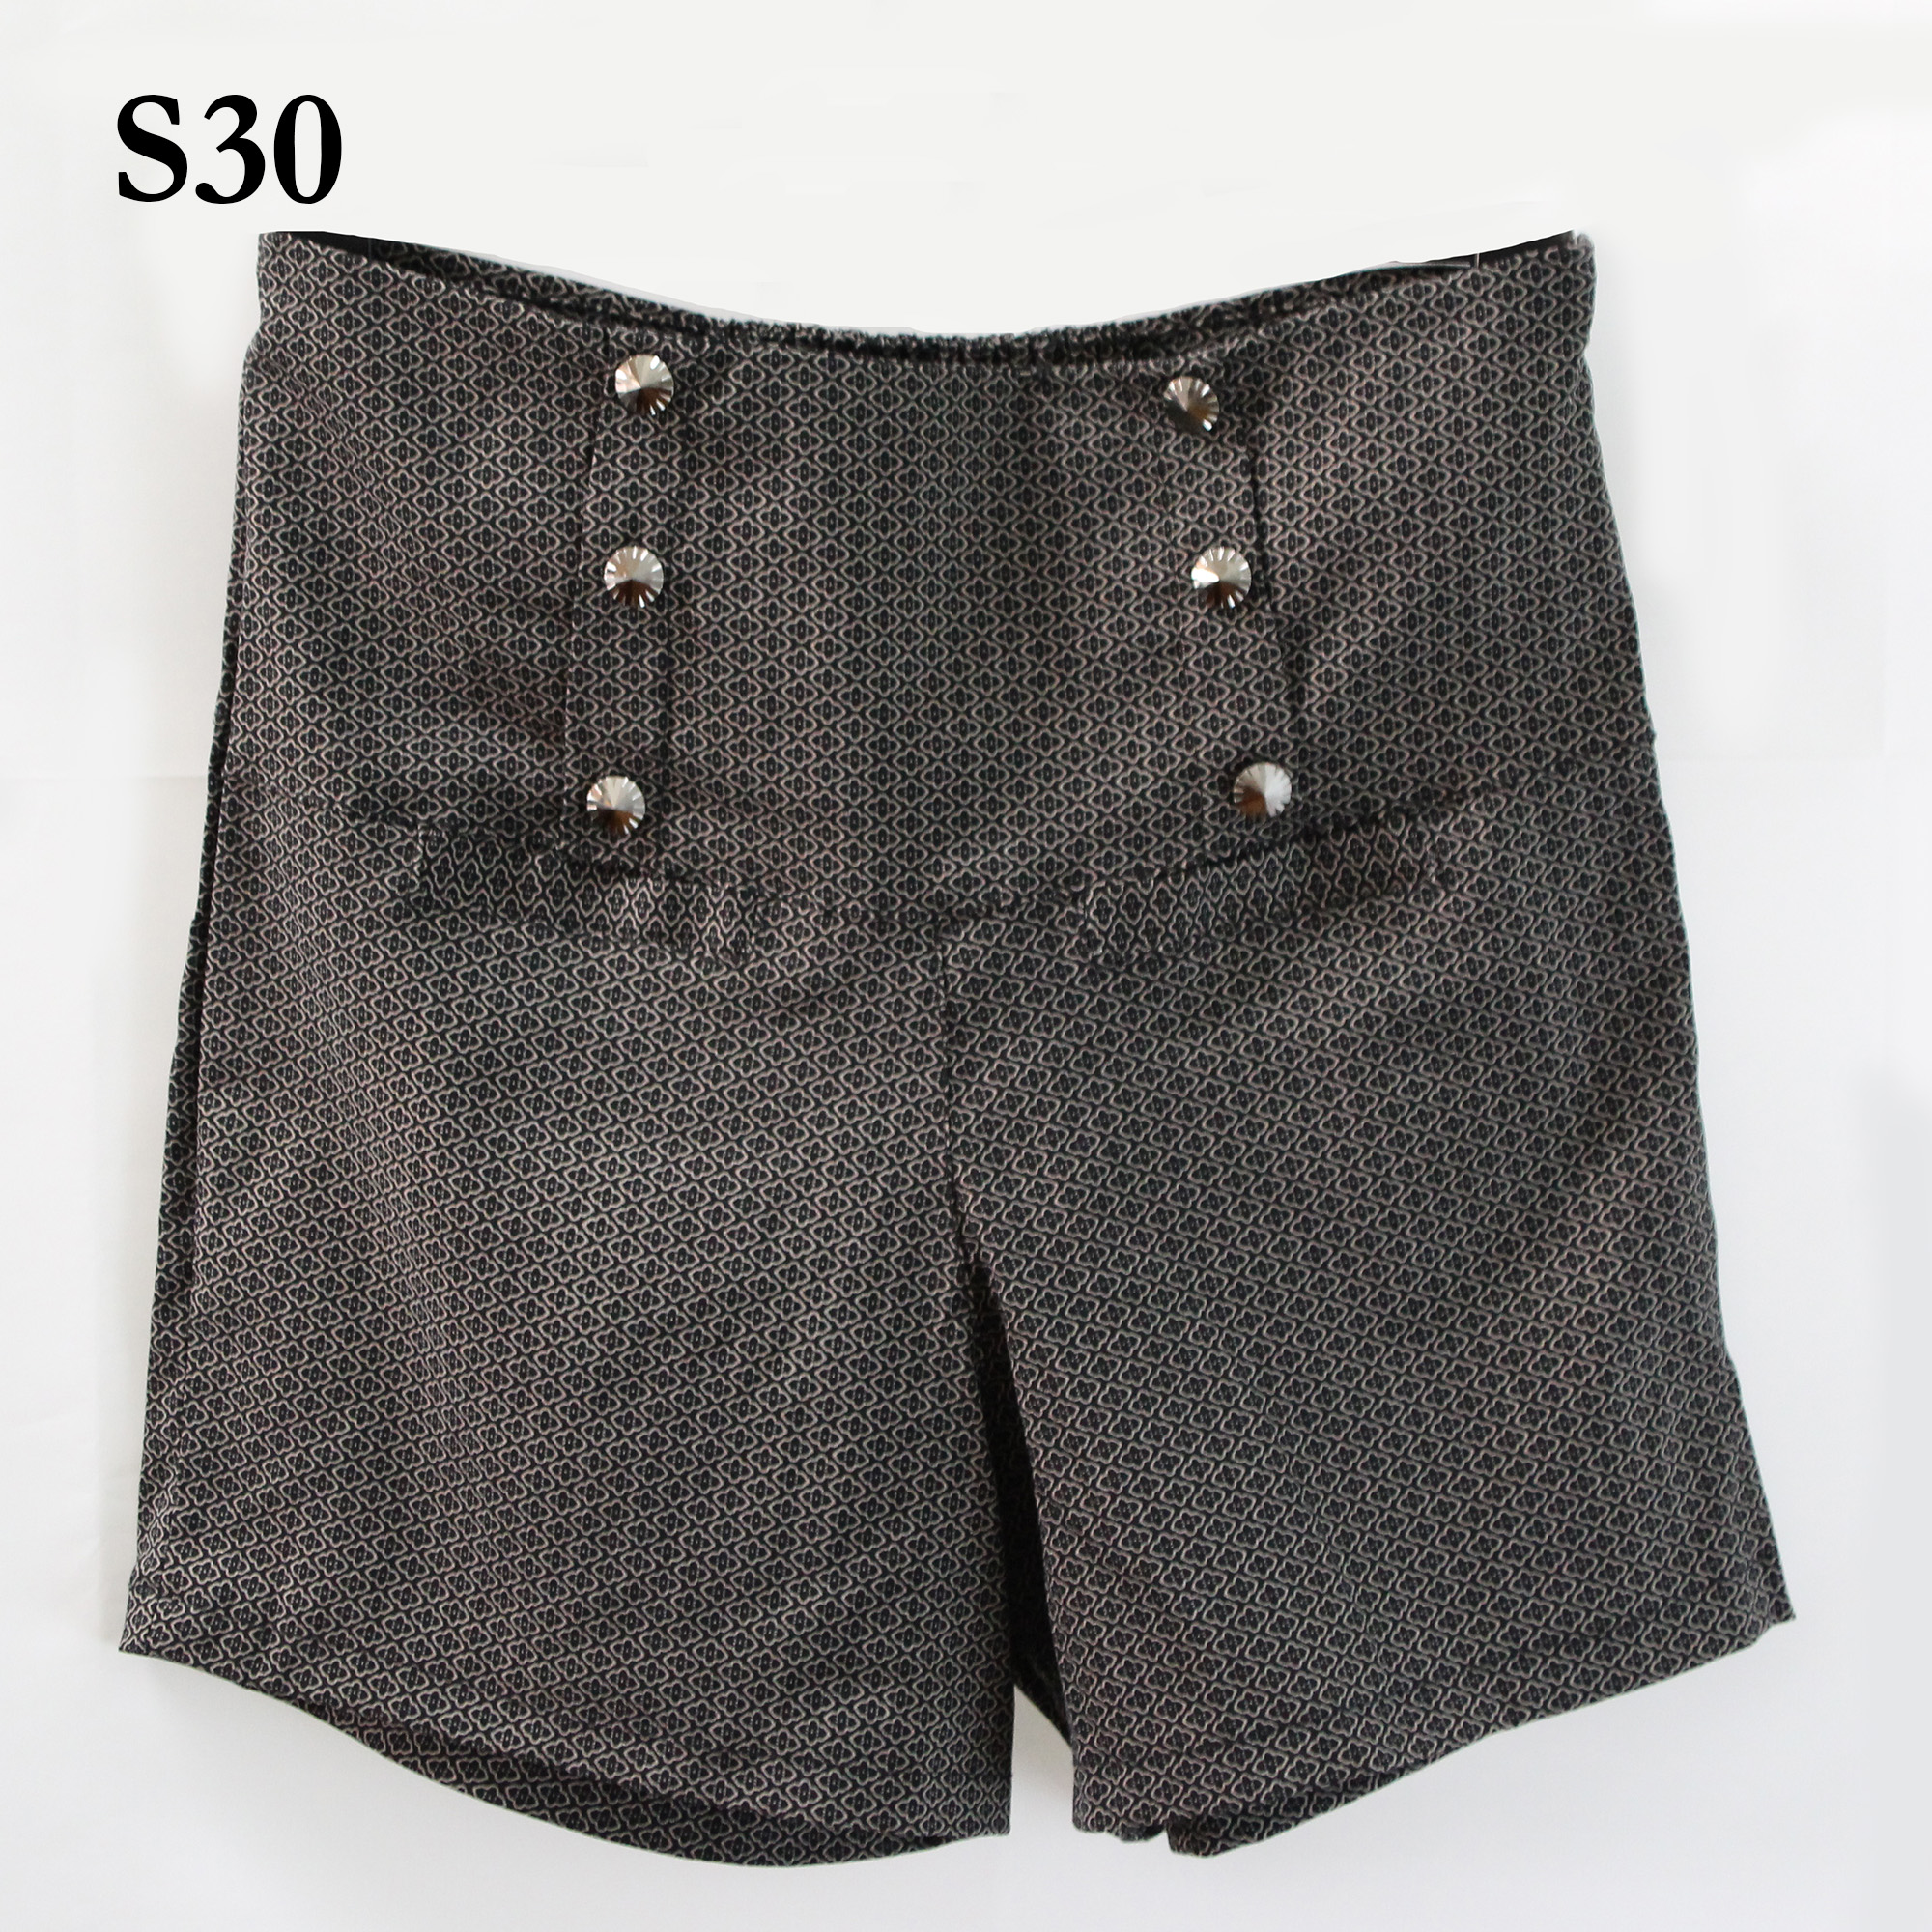 f957981e6512 Specifications of High Waist Shorts for Women - Golden Mile [More Designs  Inside]